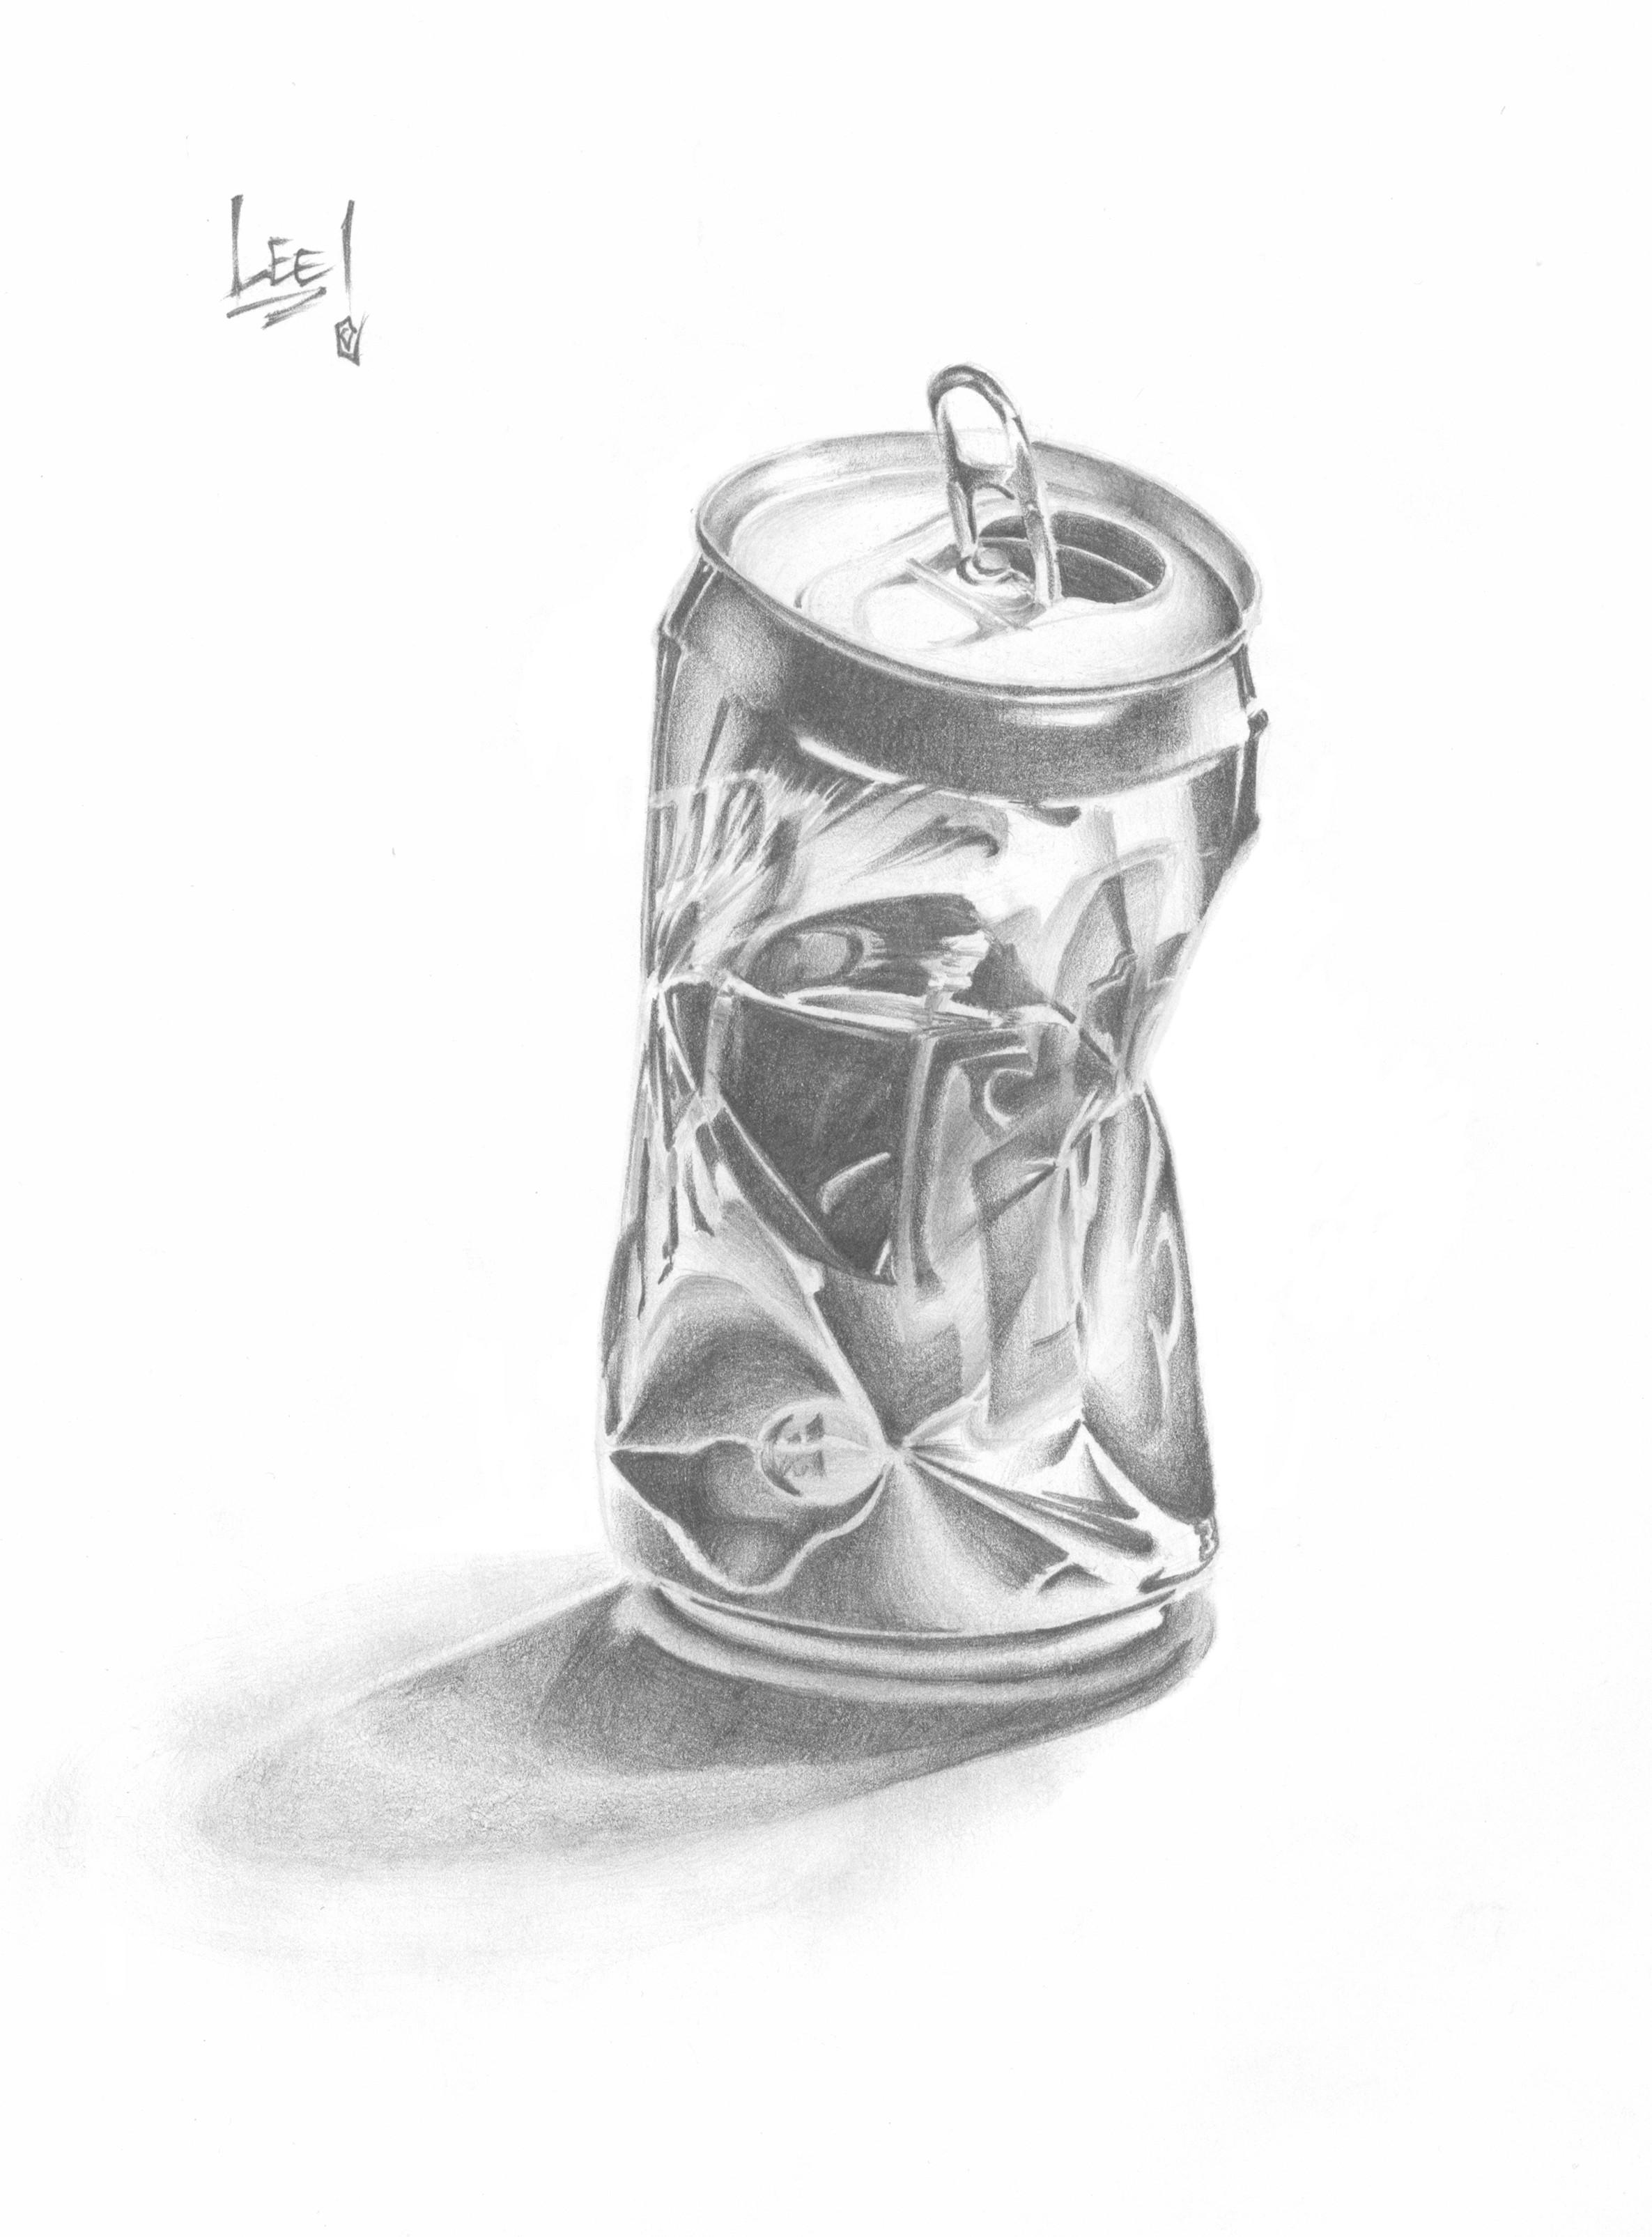 crushed can clipart. crushed pop can by 82esoteric84 clipart c